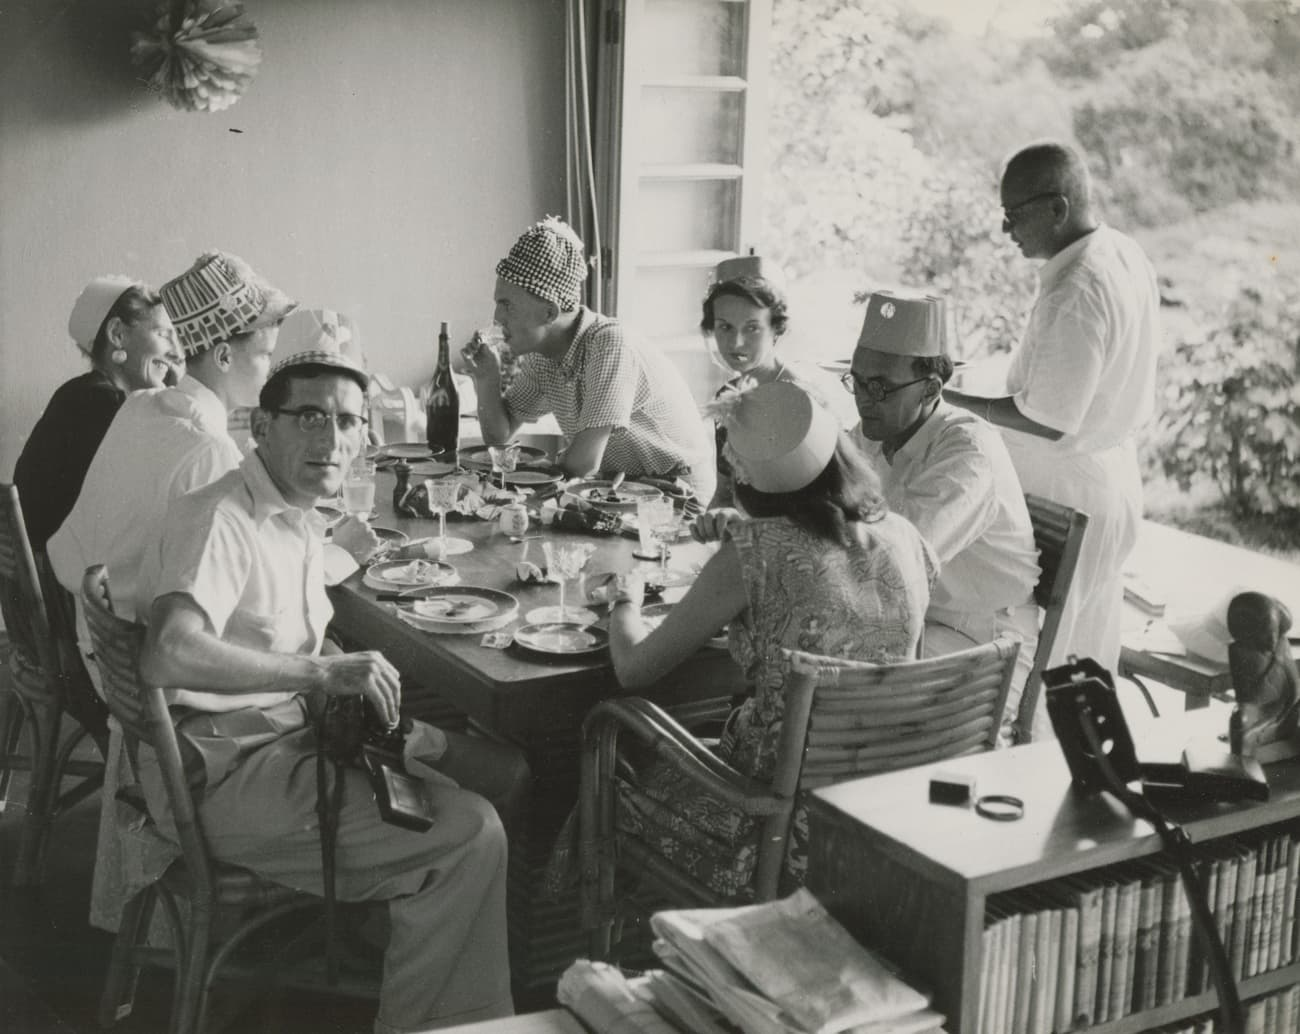 Christmas meal of expatriates, 1953